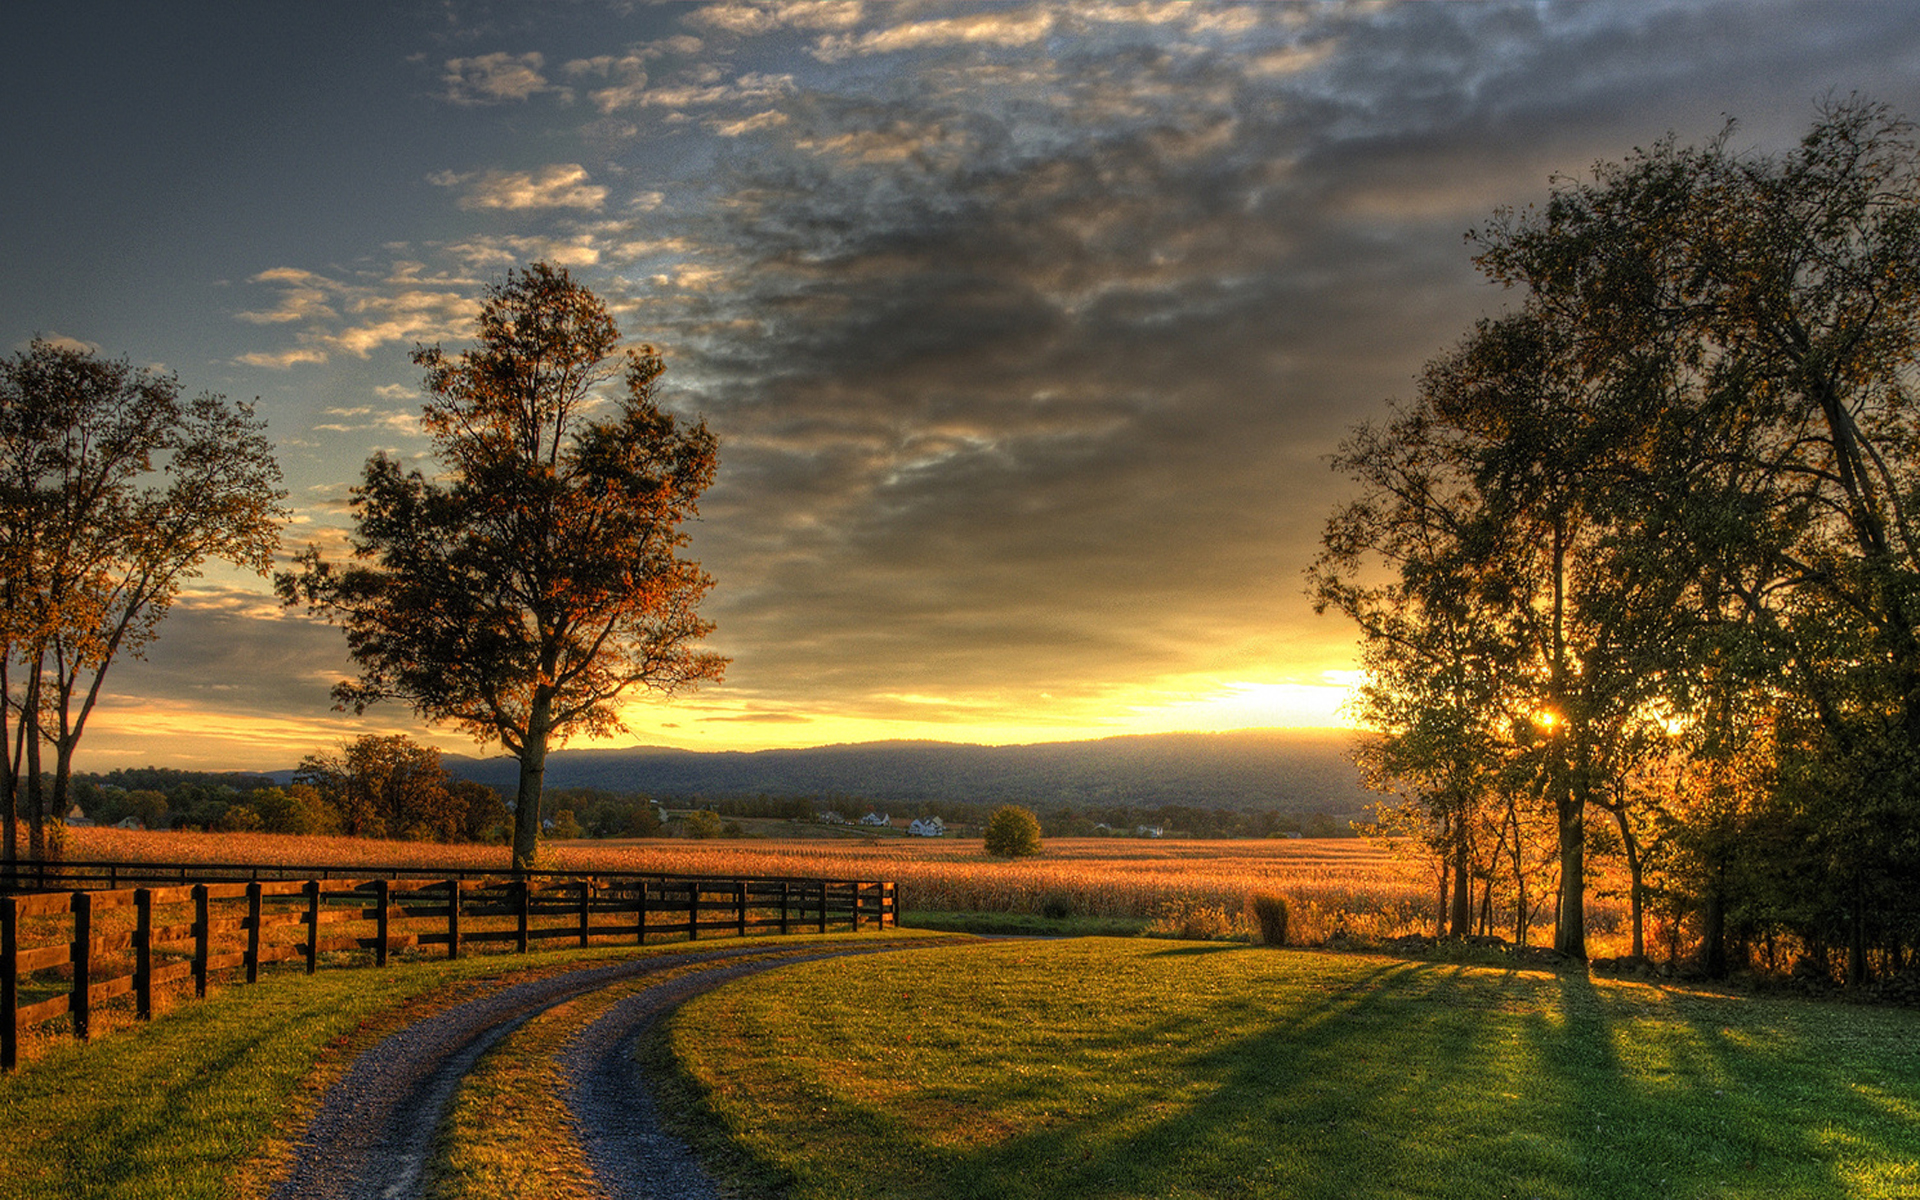 Amazing Country Sunset - Wallpaper - Faxo - Faxo